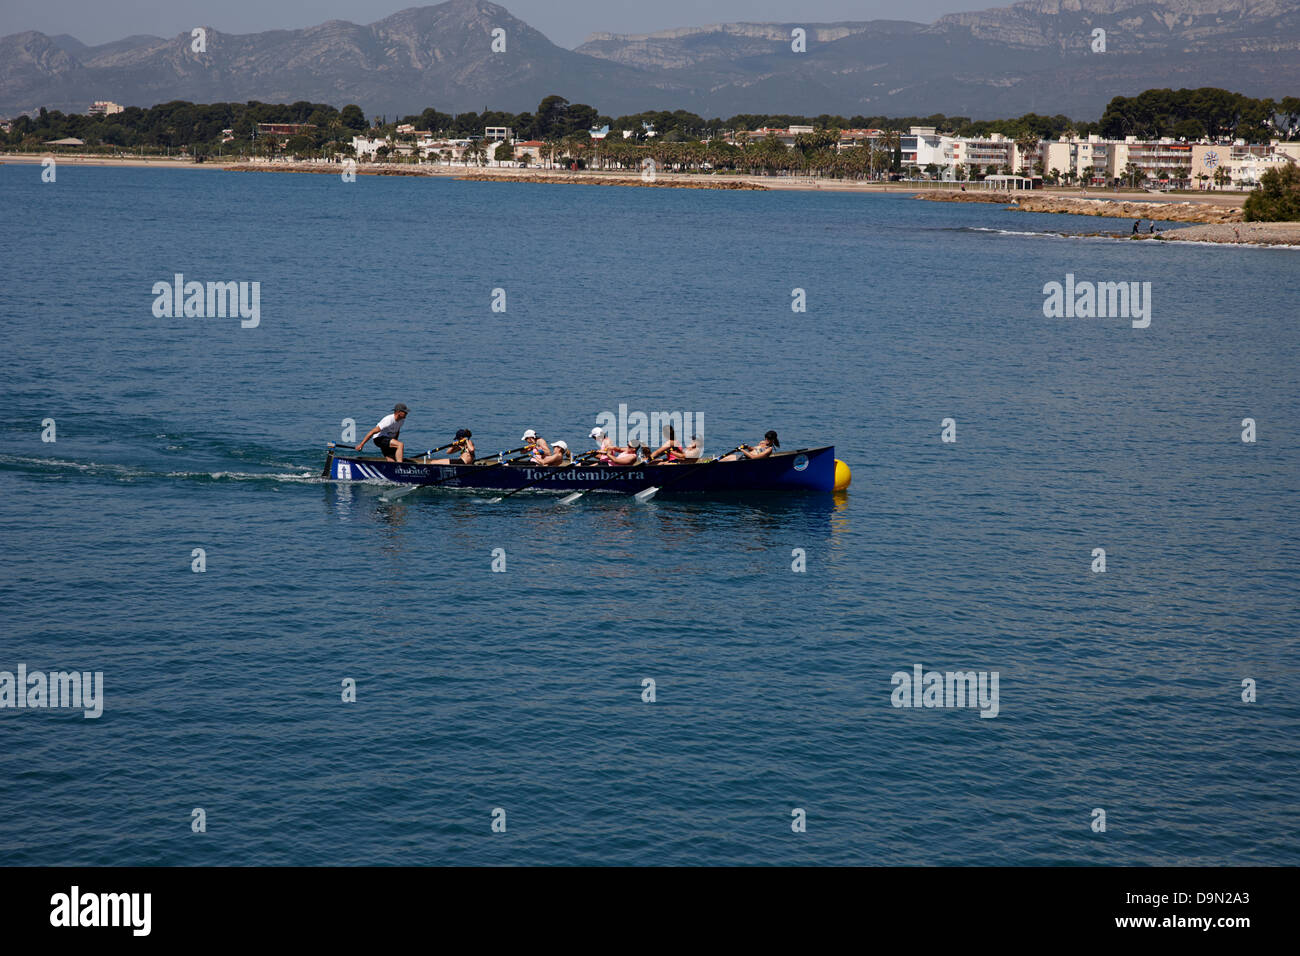 womens rowing team practising rounding buoy at Cambrils Catalonia Spain - Stock Image